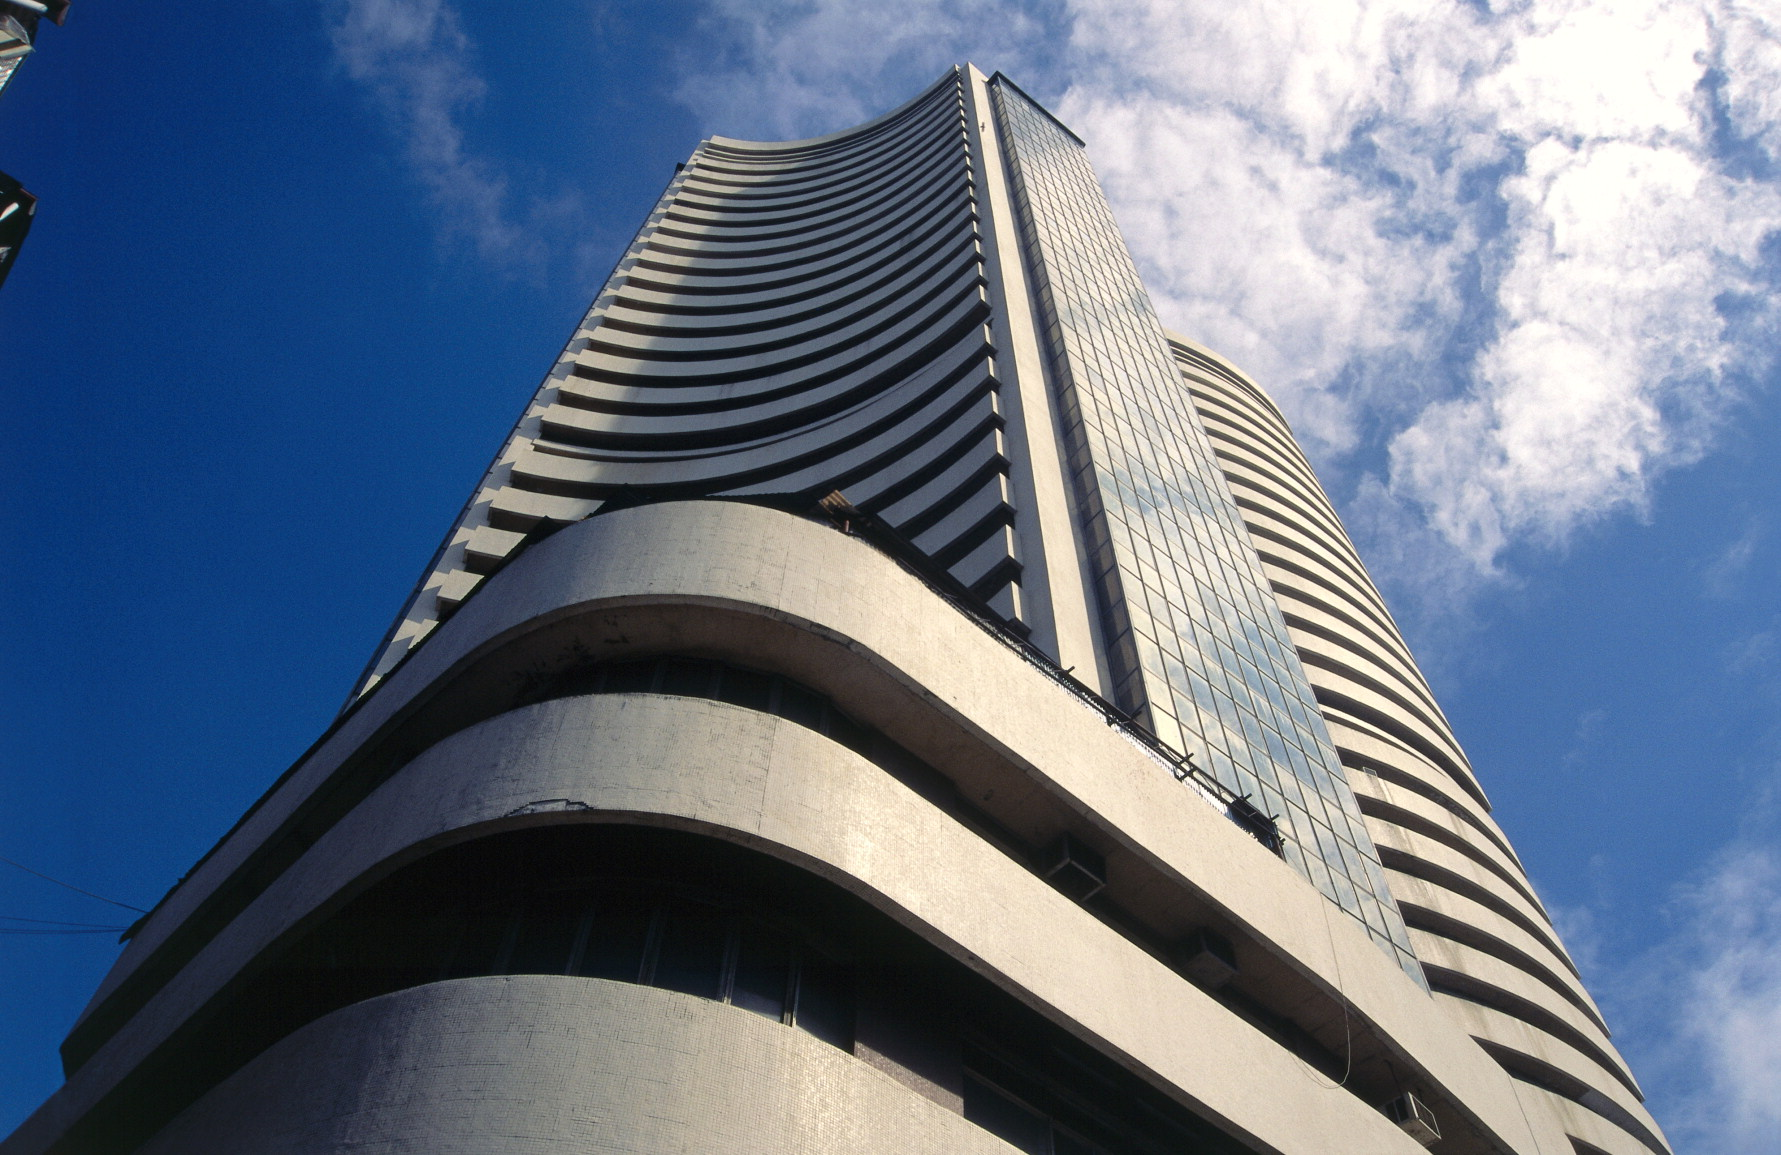 bse sensex india Nirmal bang provides details of bse sensex india, which measures top 30 companies on bse today check out the sensex index today on the nirmal bang website.